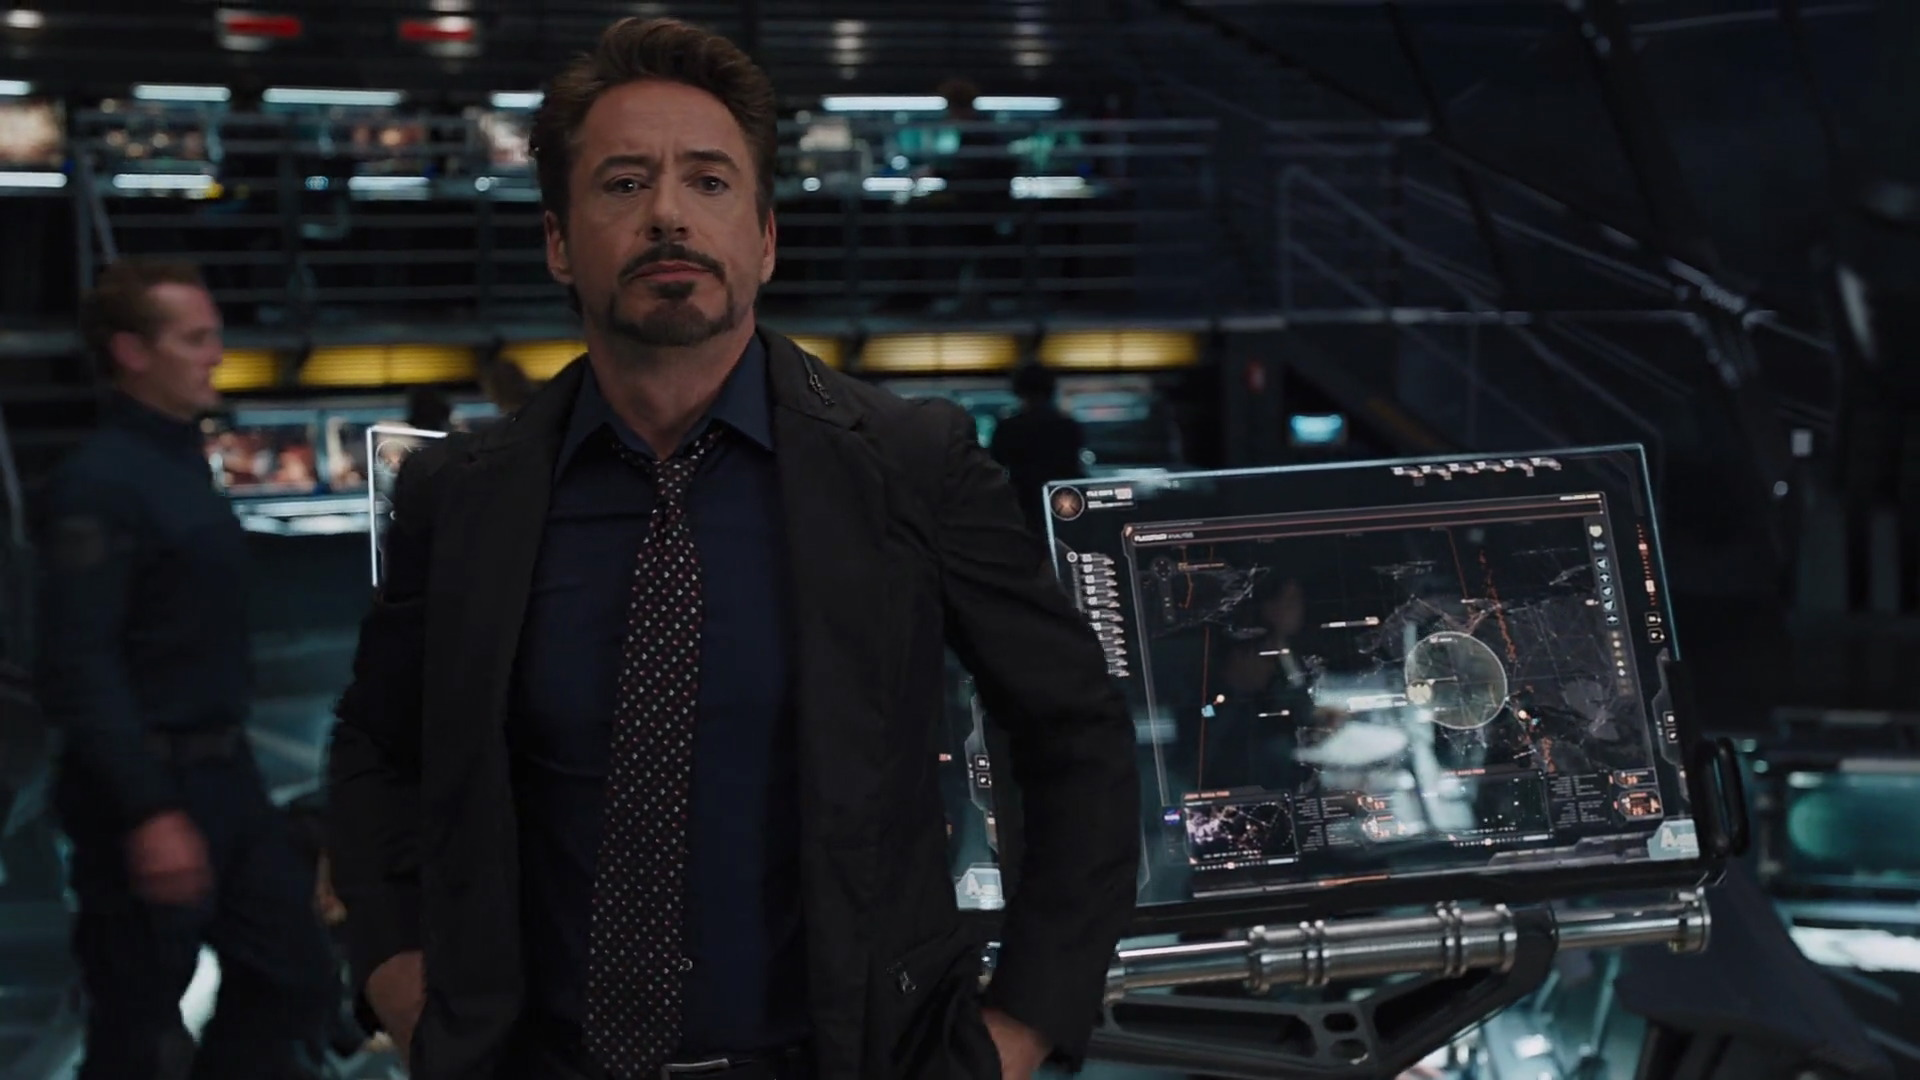 http://www.caps.media/201/2-avengers/full/avengers-movie-screencaps.com-6444.jpg